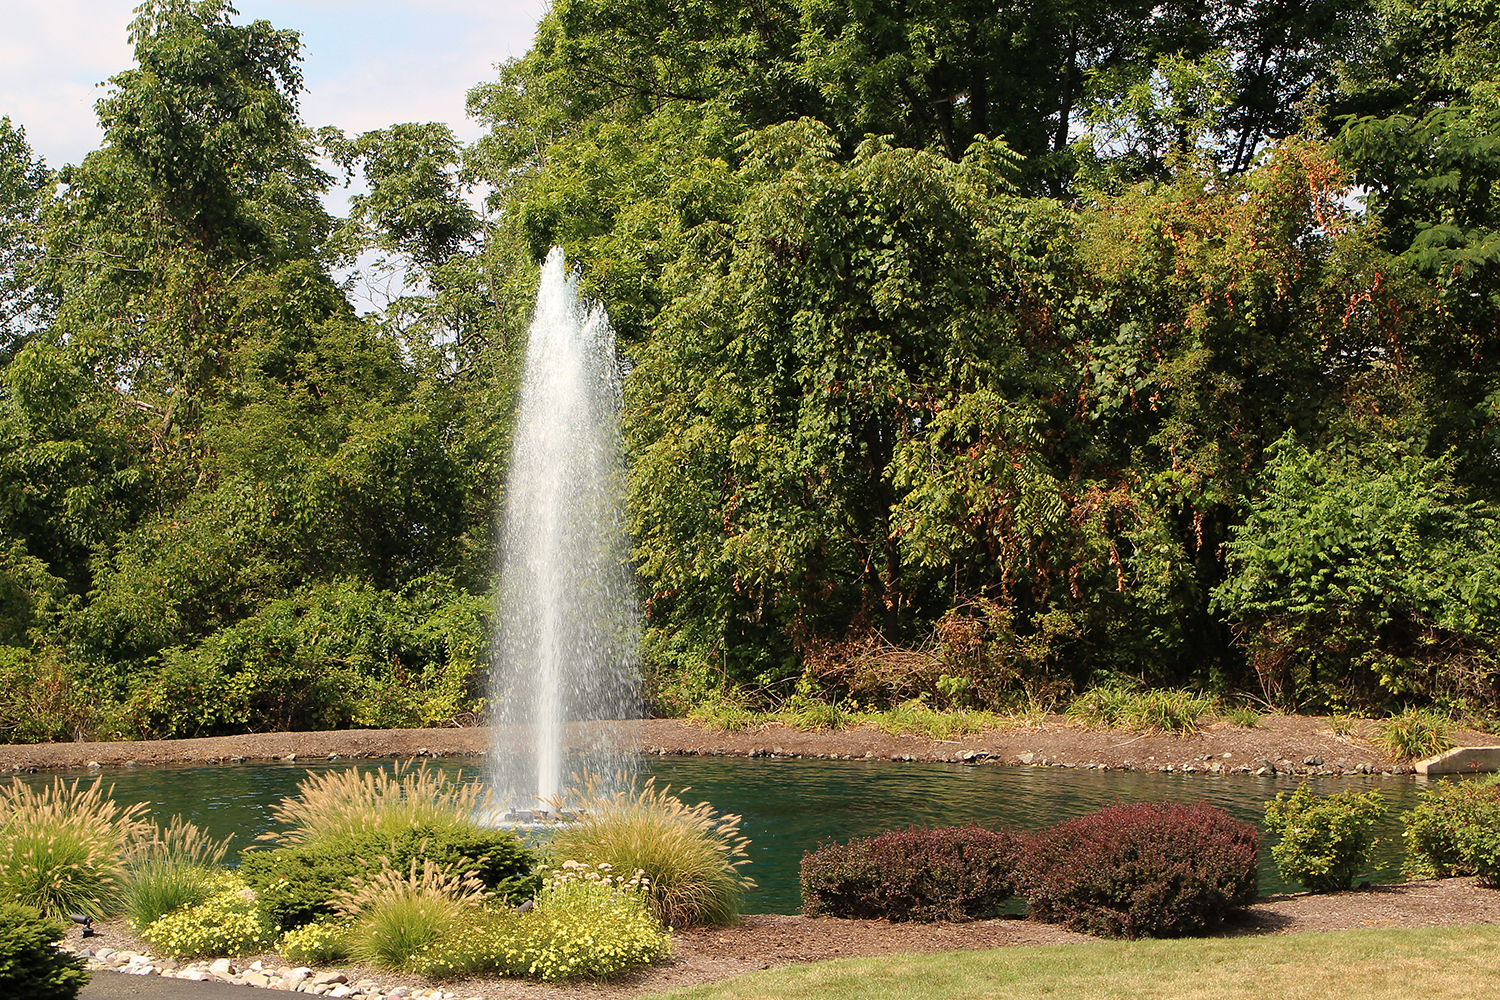 One of Otterbine's Comet Aerating Fountains in a park